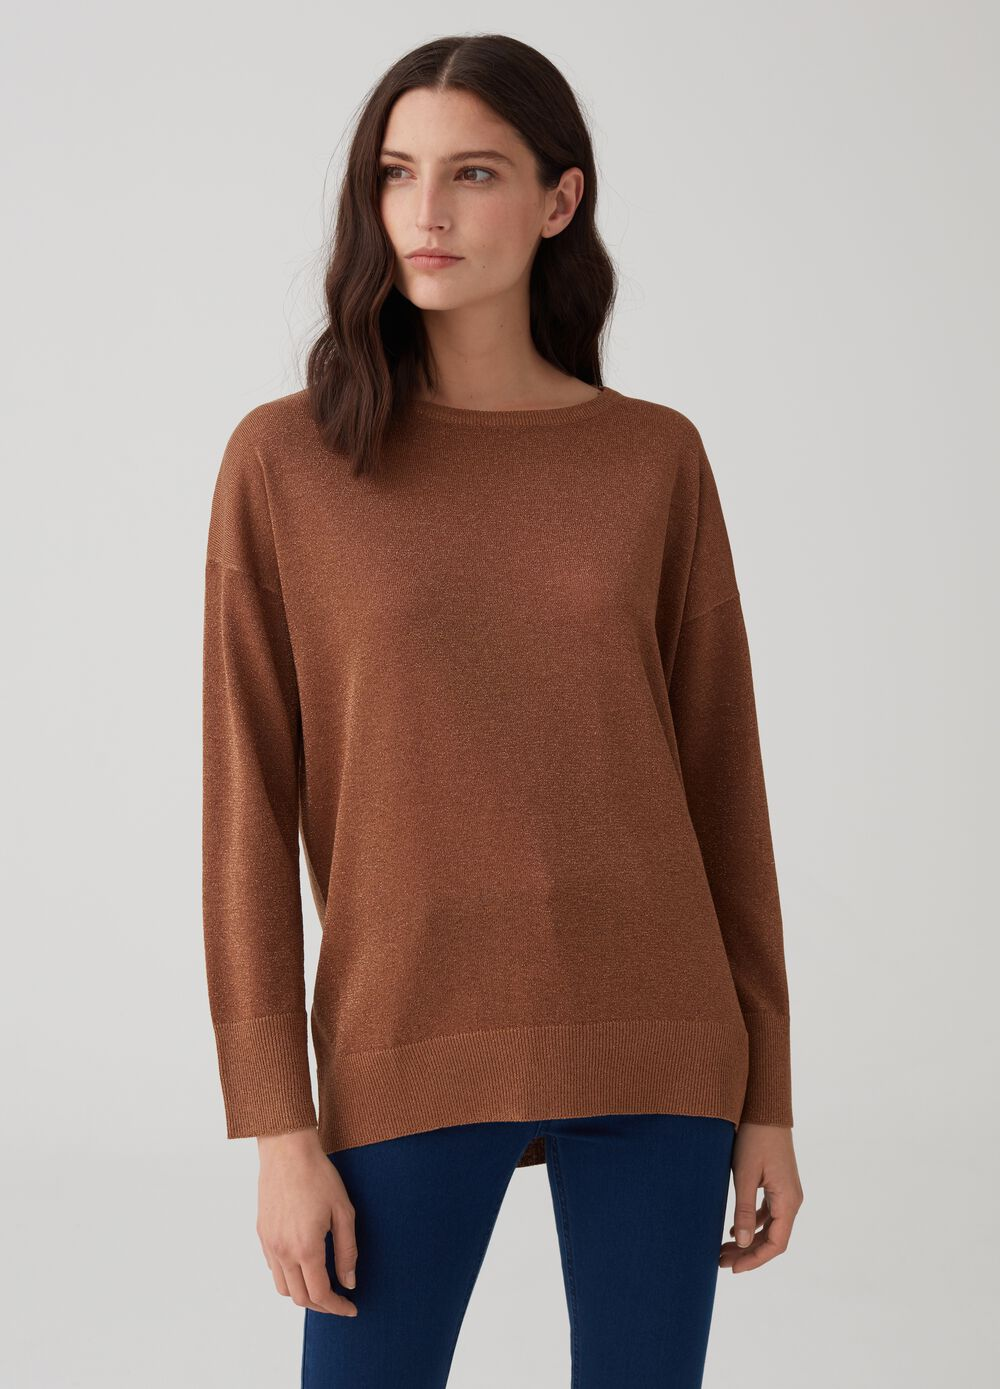 Pullover with drop shoulder and lurex